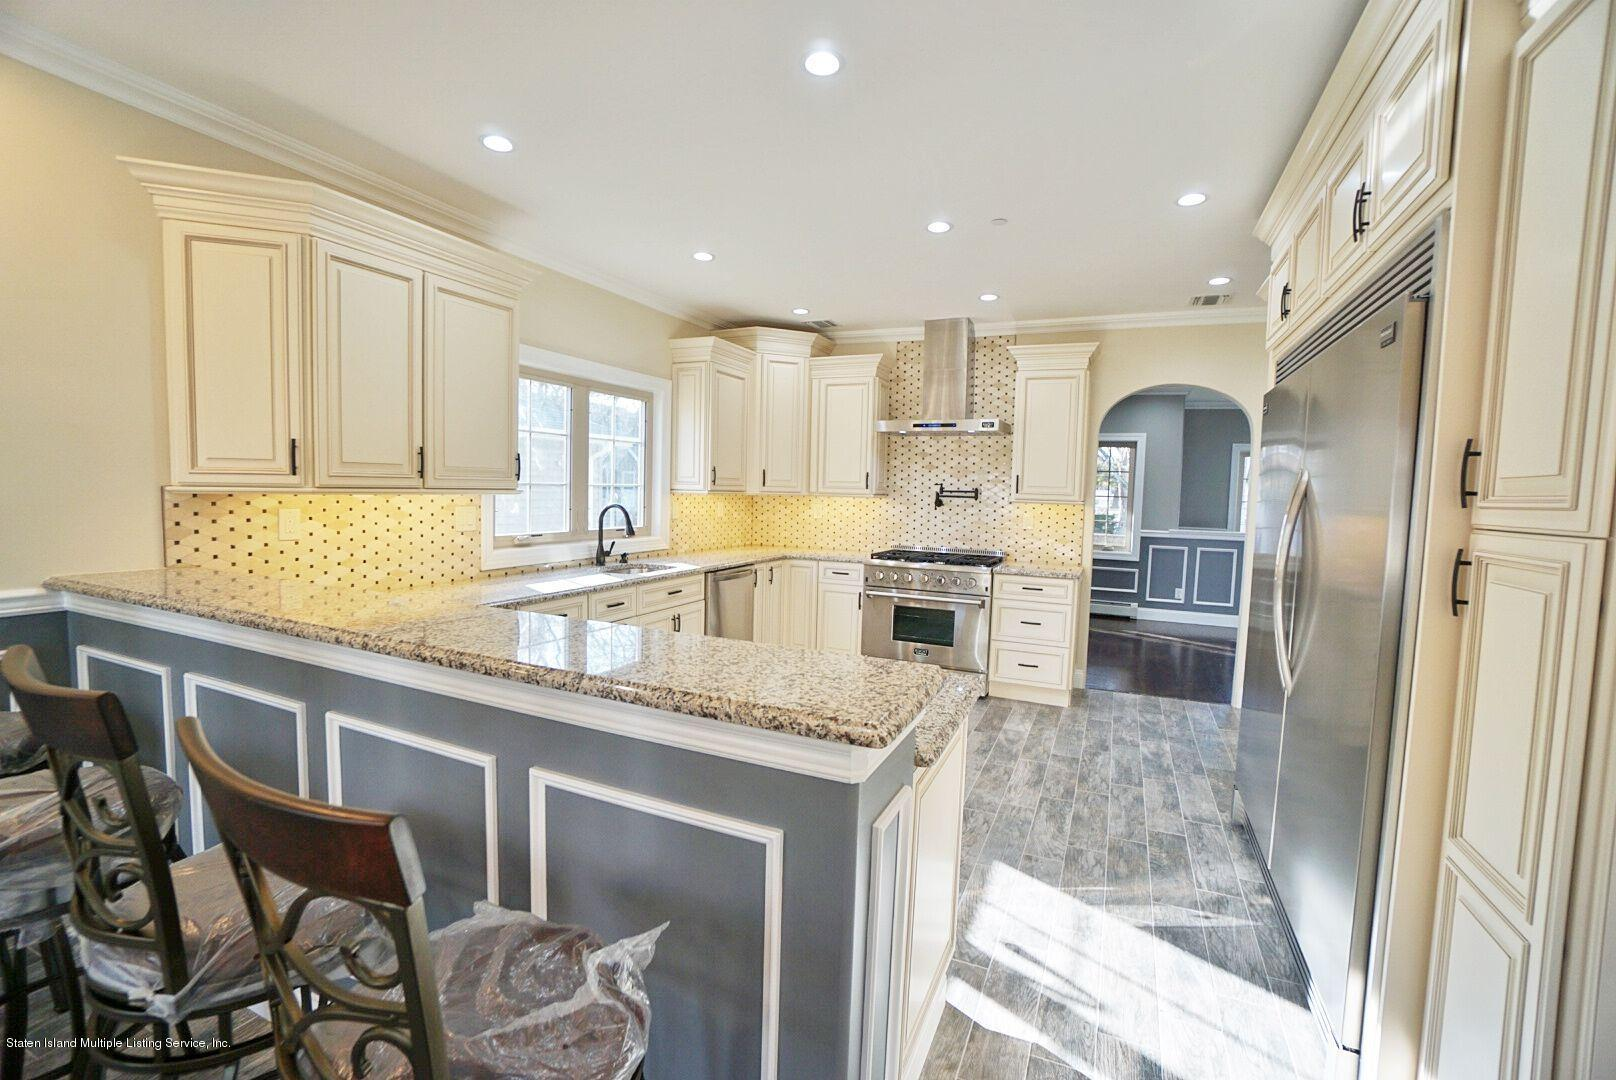 Single Family - Detached 165 Woolley Avenue  Staten Island, NY 10314, MLS-1128875-34